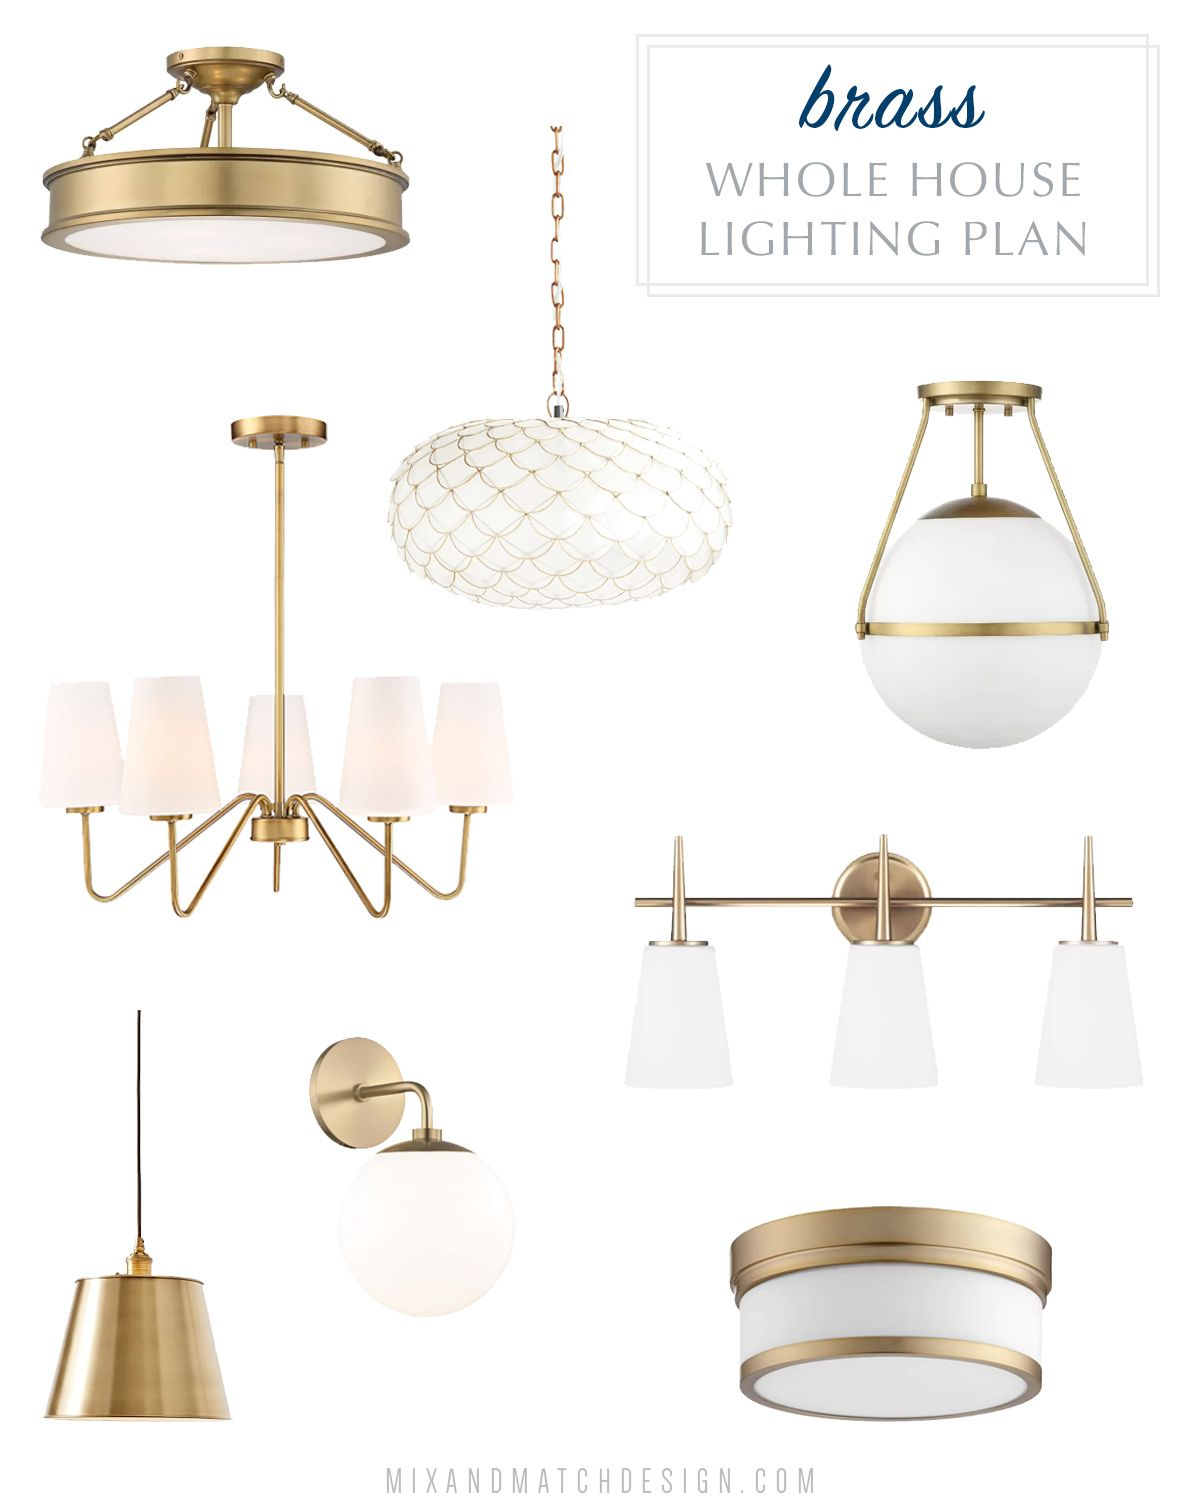 How To Choose Coordinating Light Fixtures For Your Home Interior Light Fixtures Living Room Light Fixtures Light Fixtures